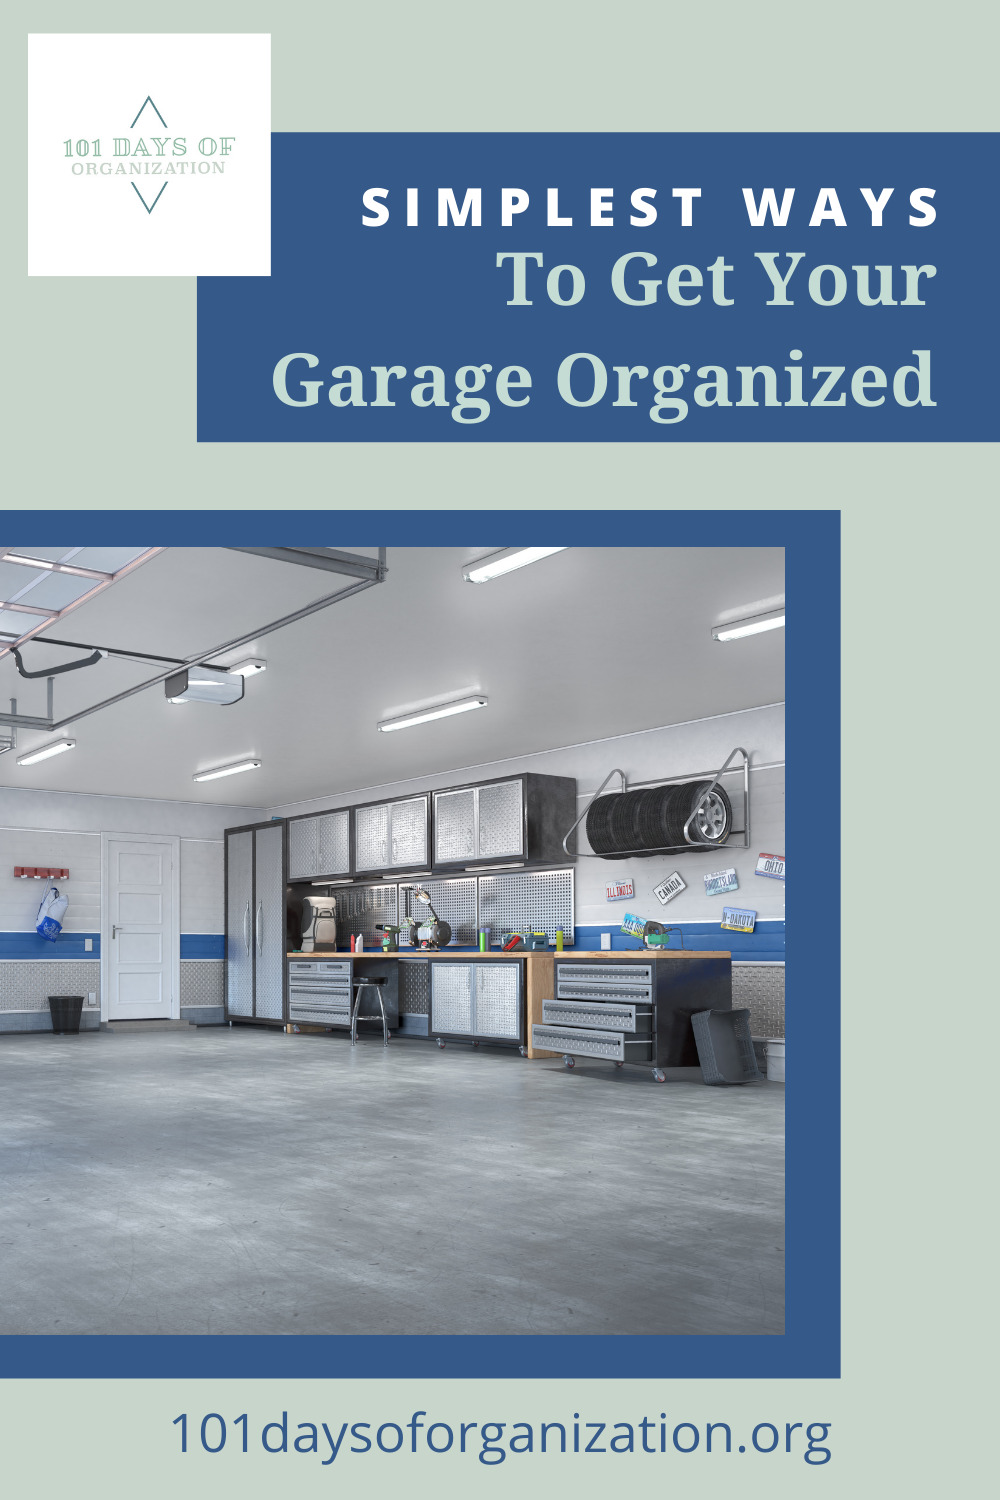 101daysoforganization.org is the best place to go to learn how to get your home and life in order. Find simple solutions for cleaning and organizing everything. Tackle the clutter in your garage today with these clever ideas!